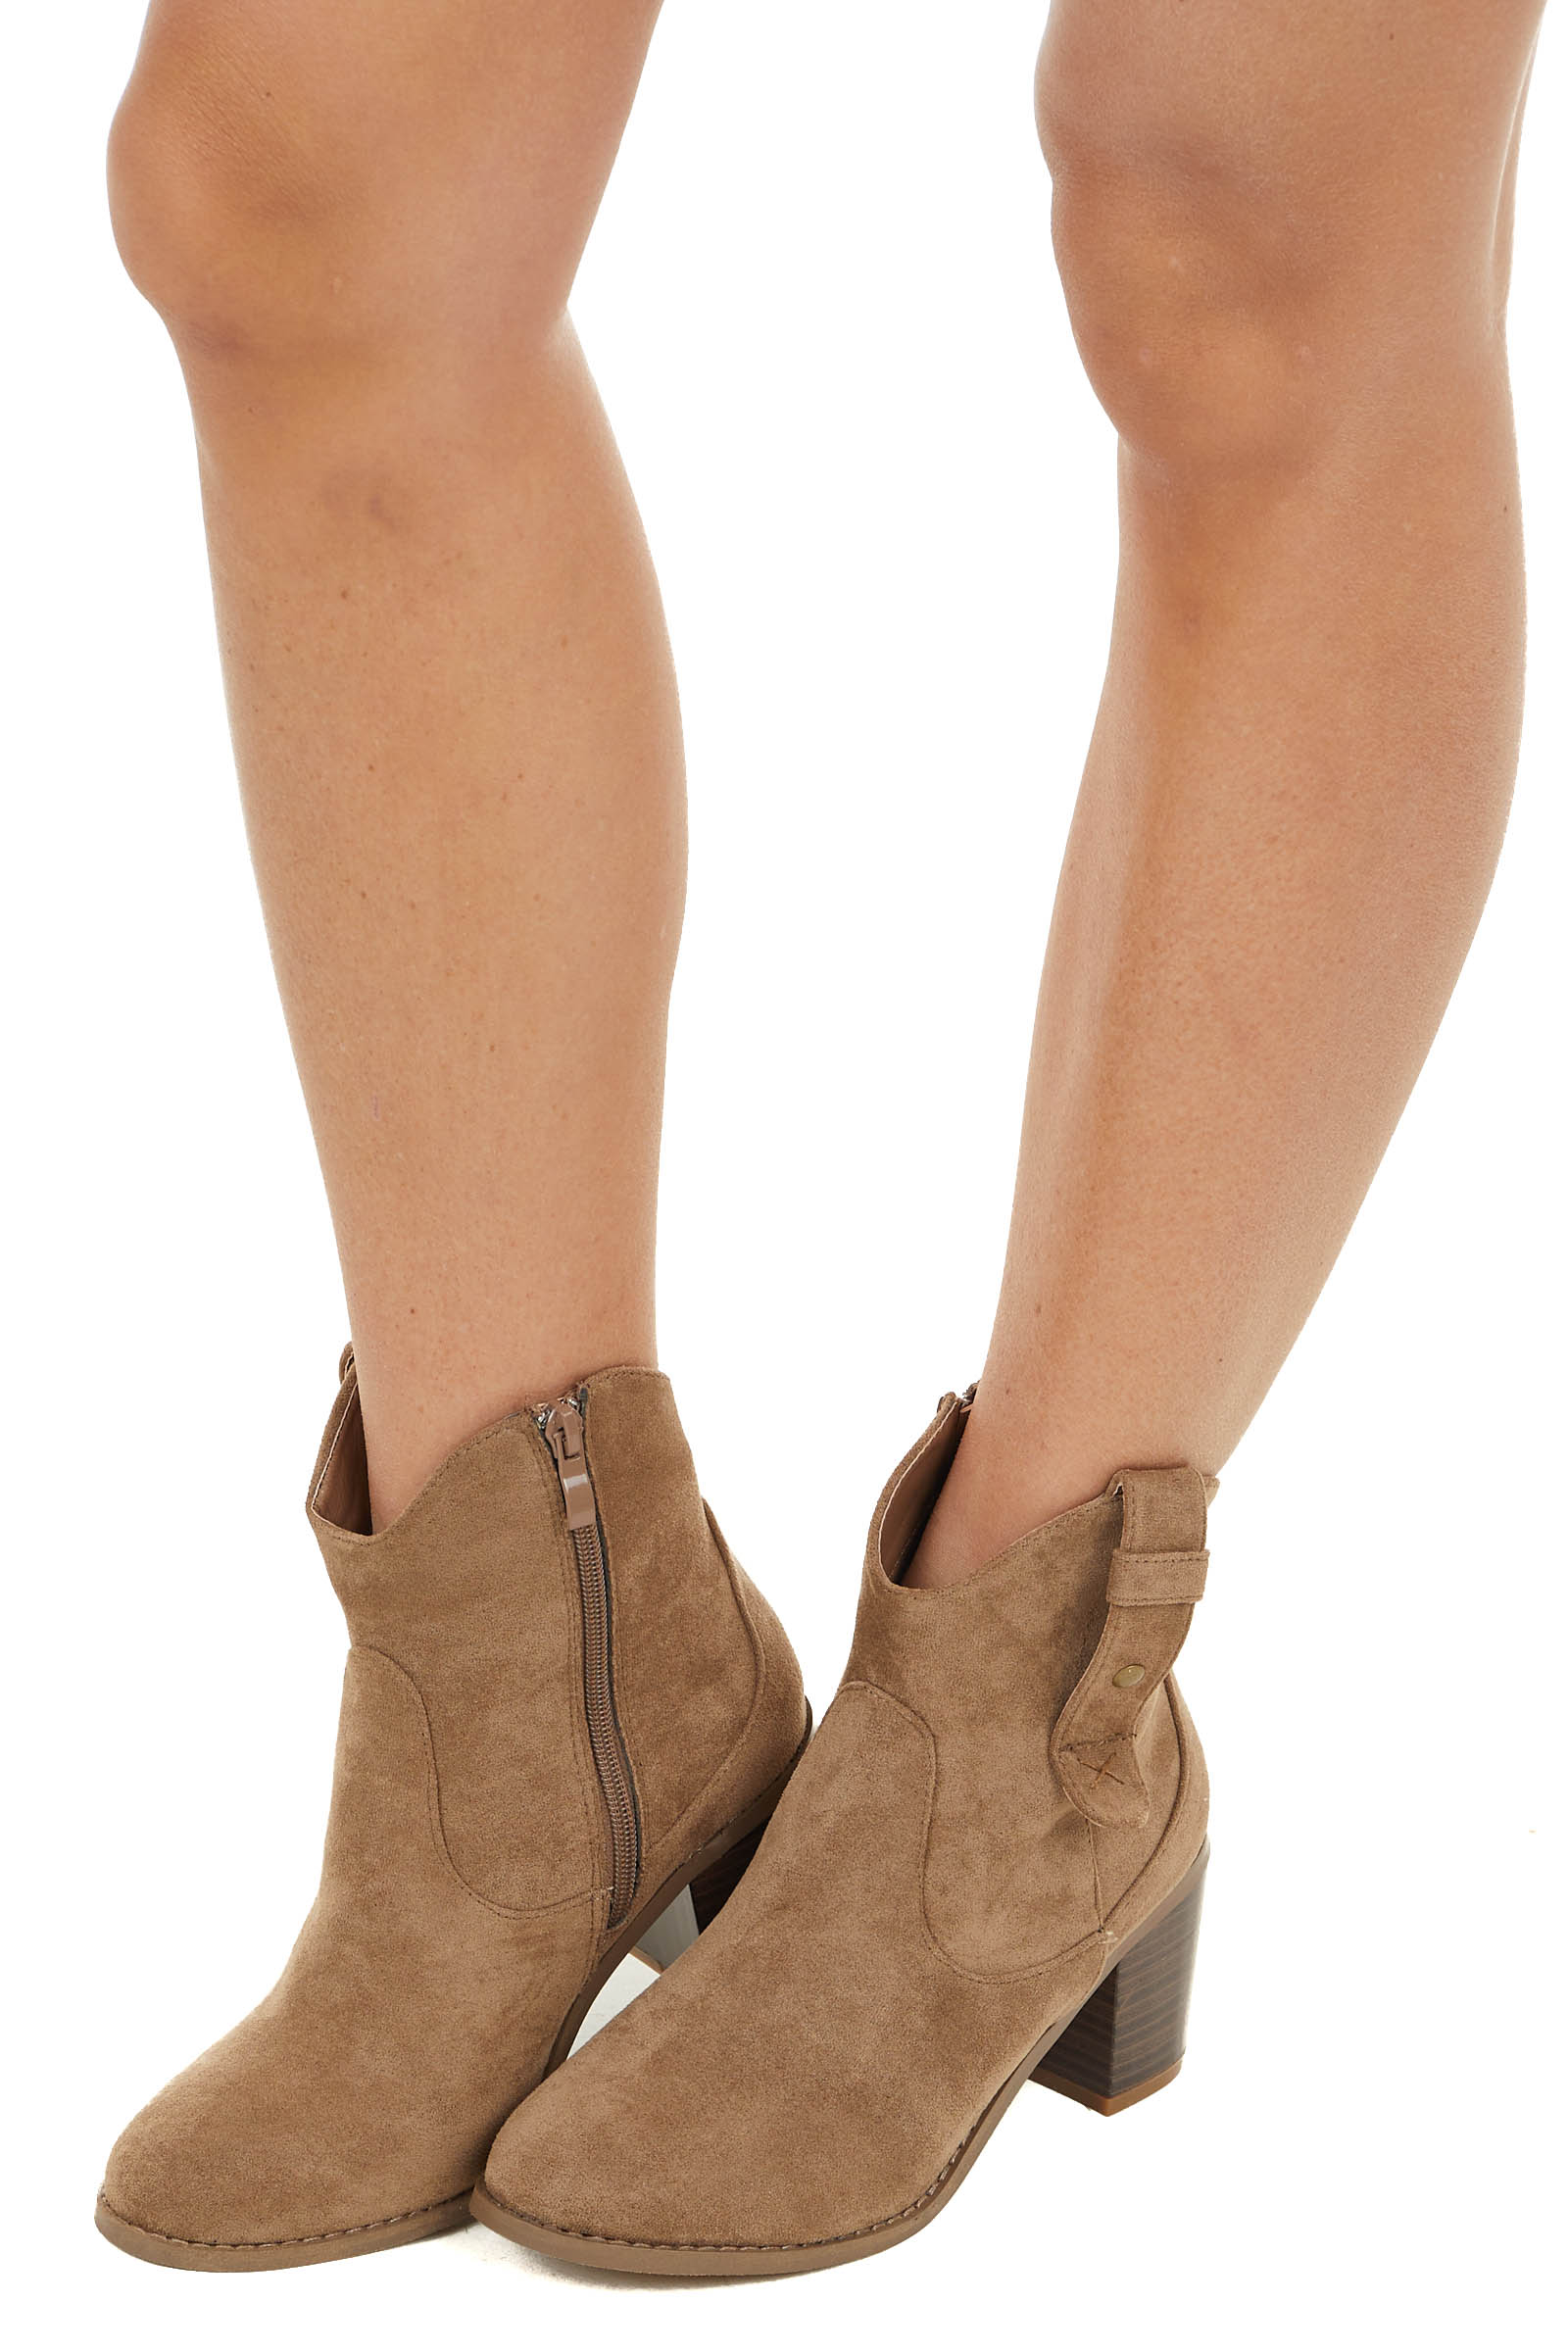 Latte Faux Suede Western Style Block Heel Zip Up Booties